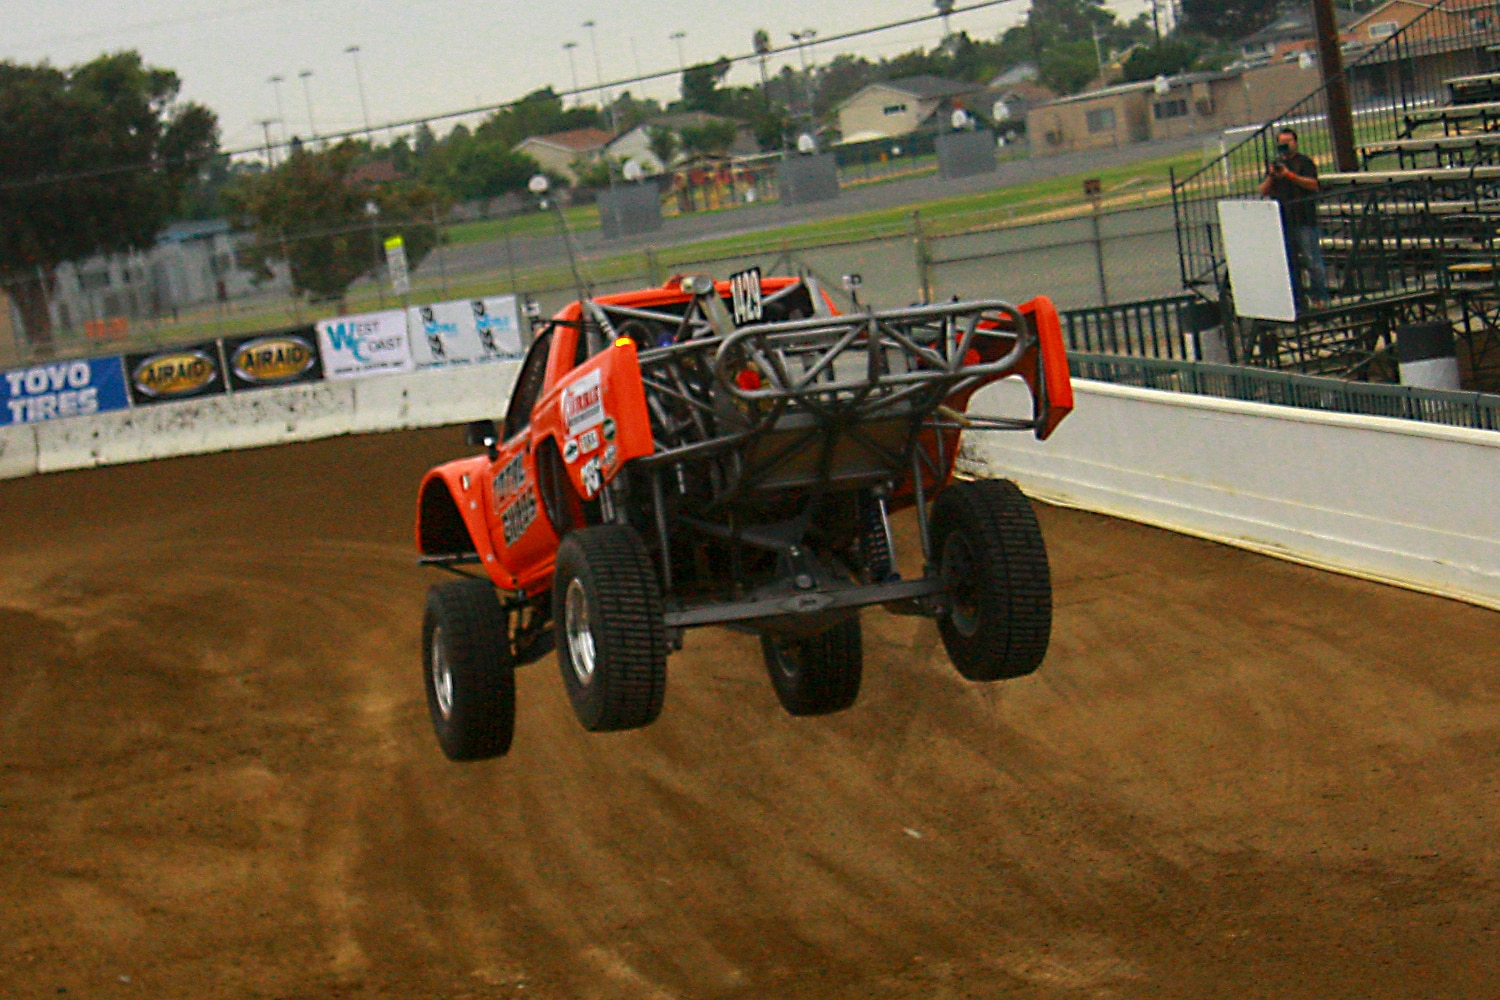 Off Road Race Truck   11  Dan Vance Total Chaos Toyota pickup full droop